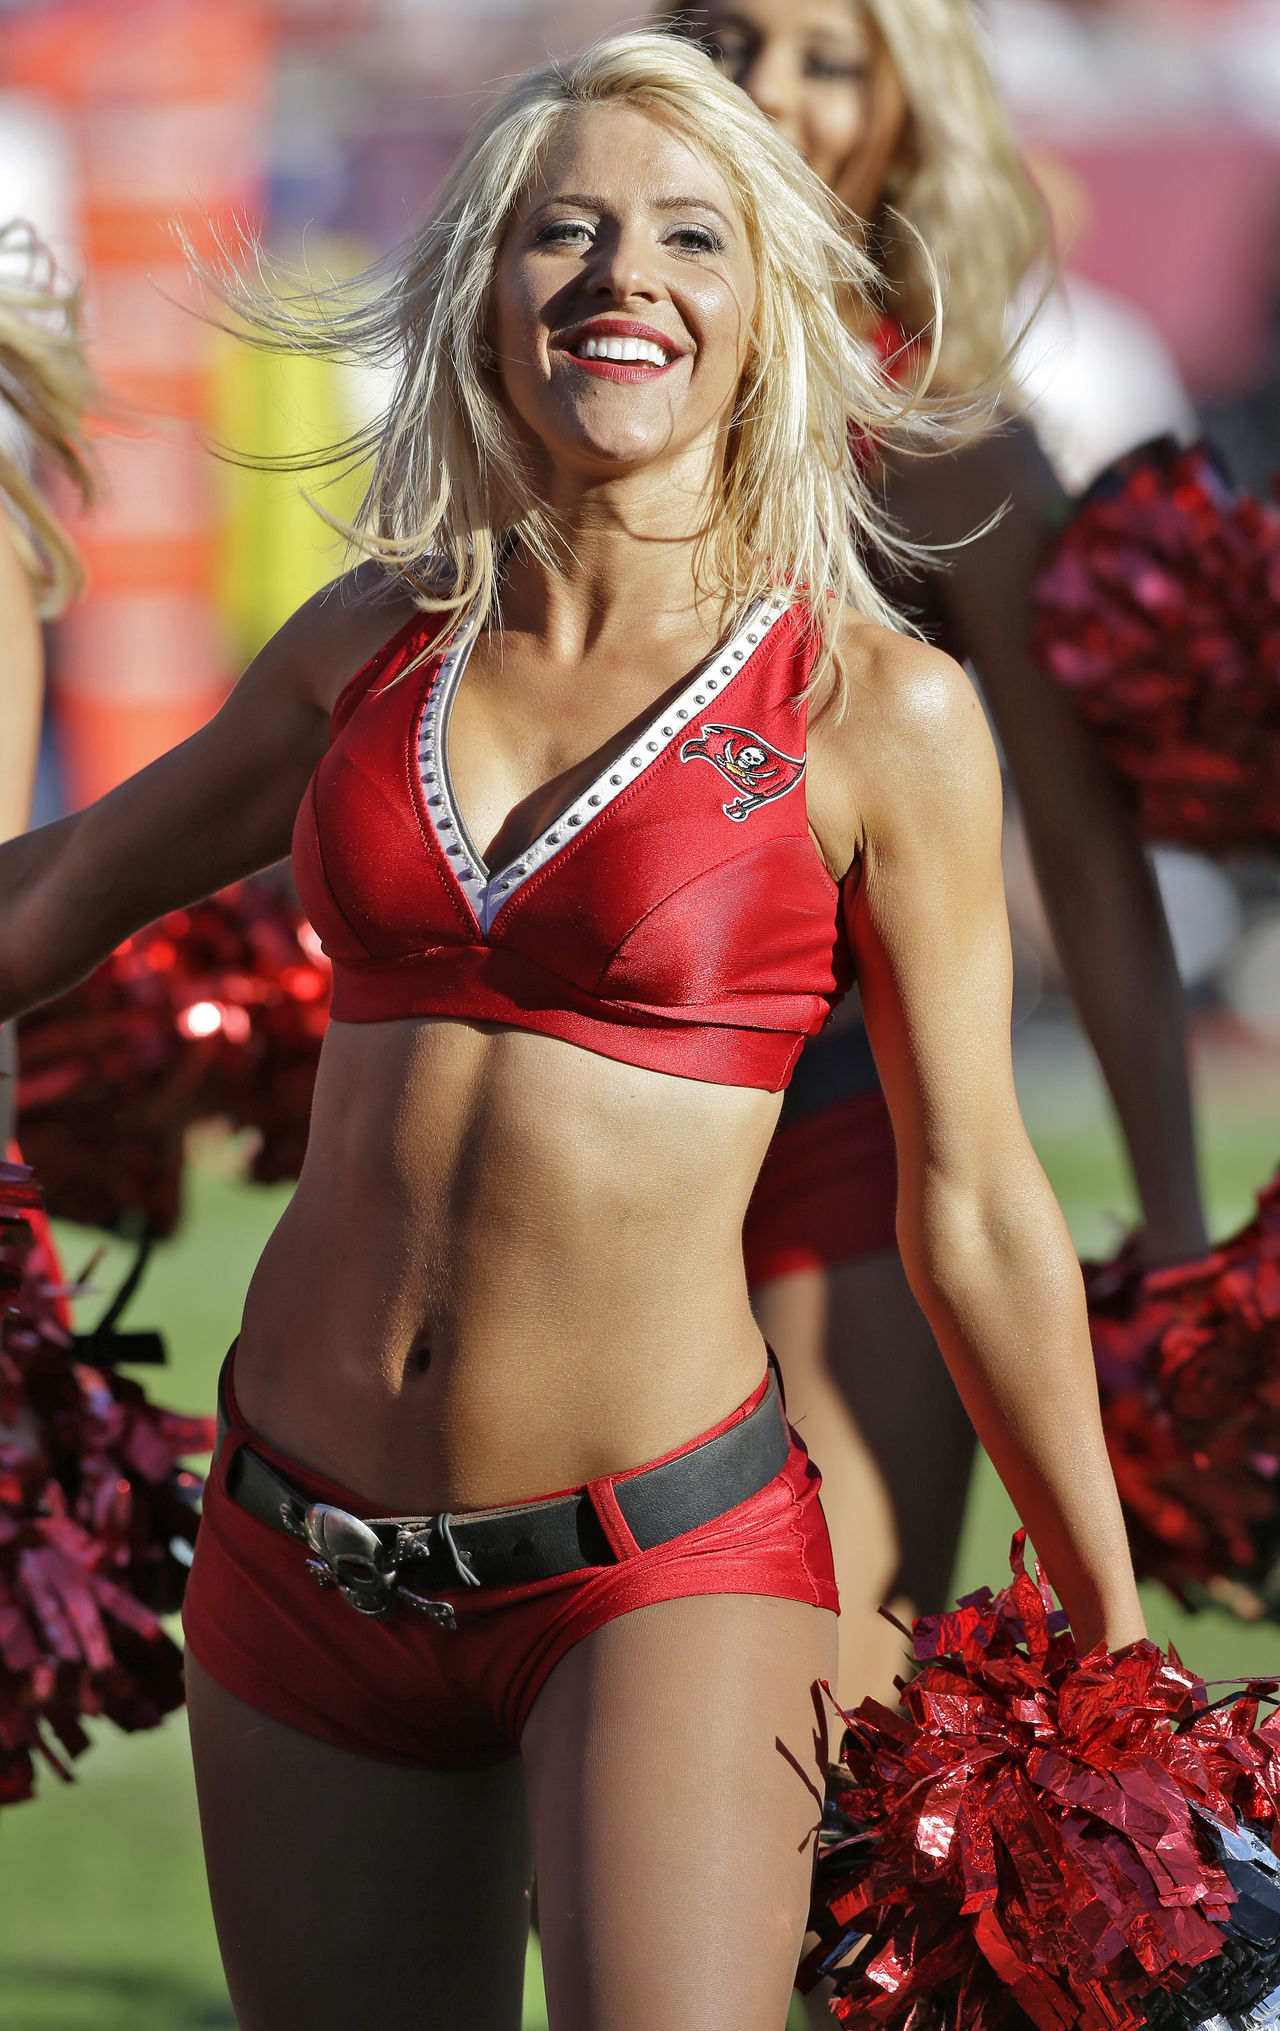 Sexy pussy nfl cheerleaders something is